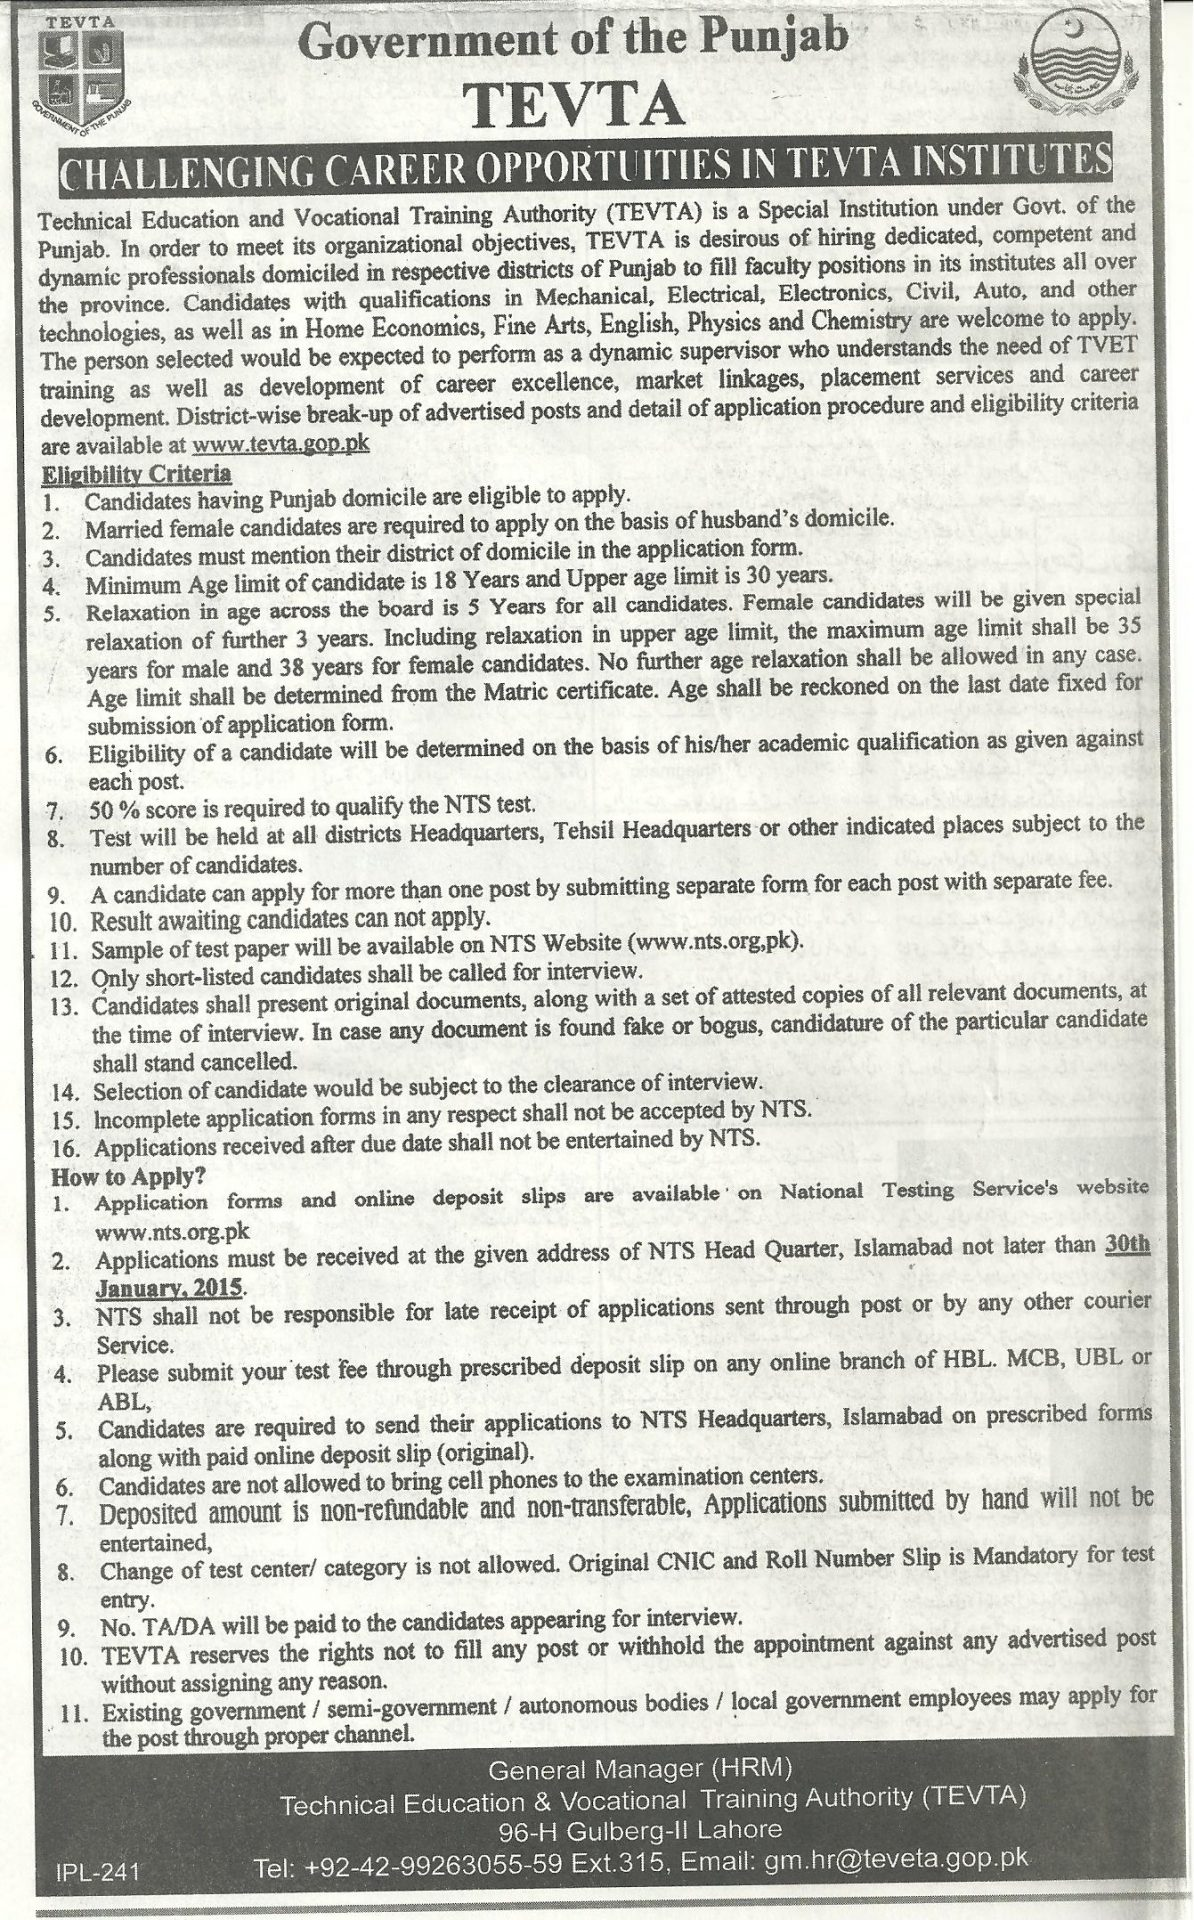 TEVTA Jobs NTS Application Form For Matric, Inter, Graduate, Master Level Positions